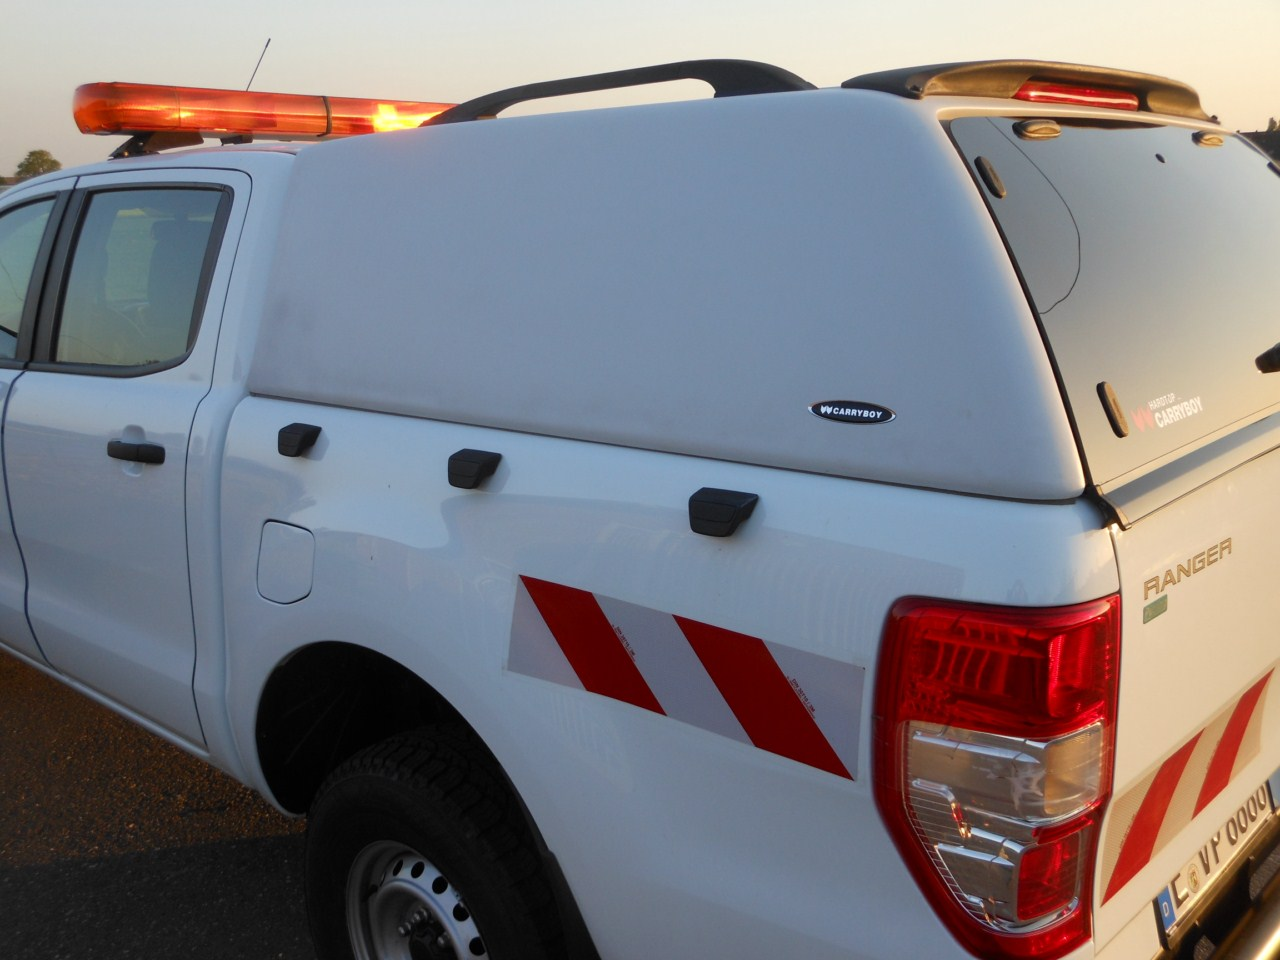 Carryboy Hardtop 560 ohne Seitenfenster Mitsubishi L200 Singlecab Dachreling und Spoiler